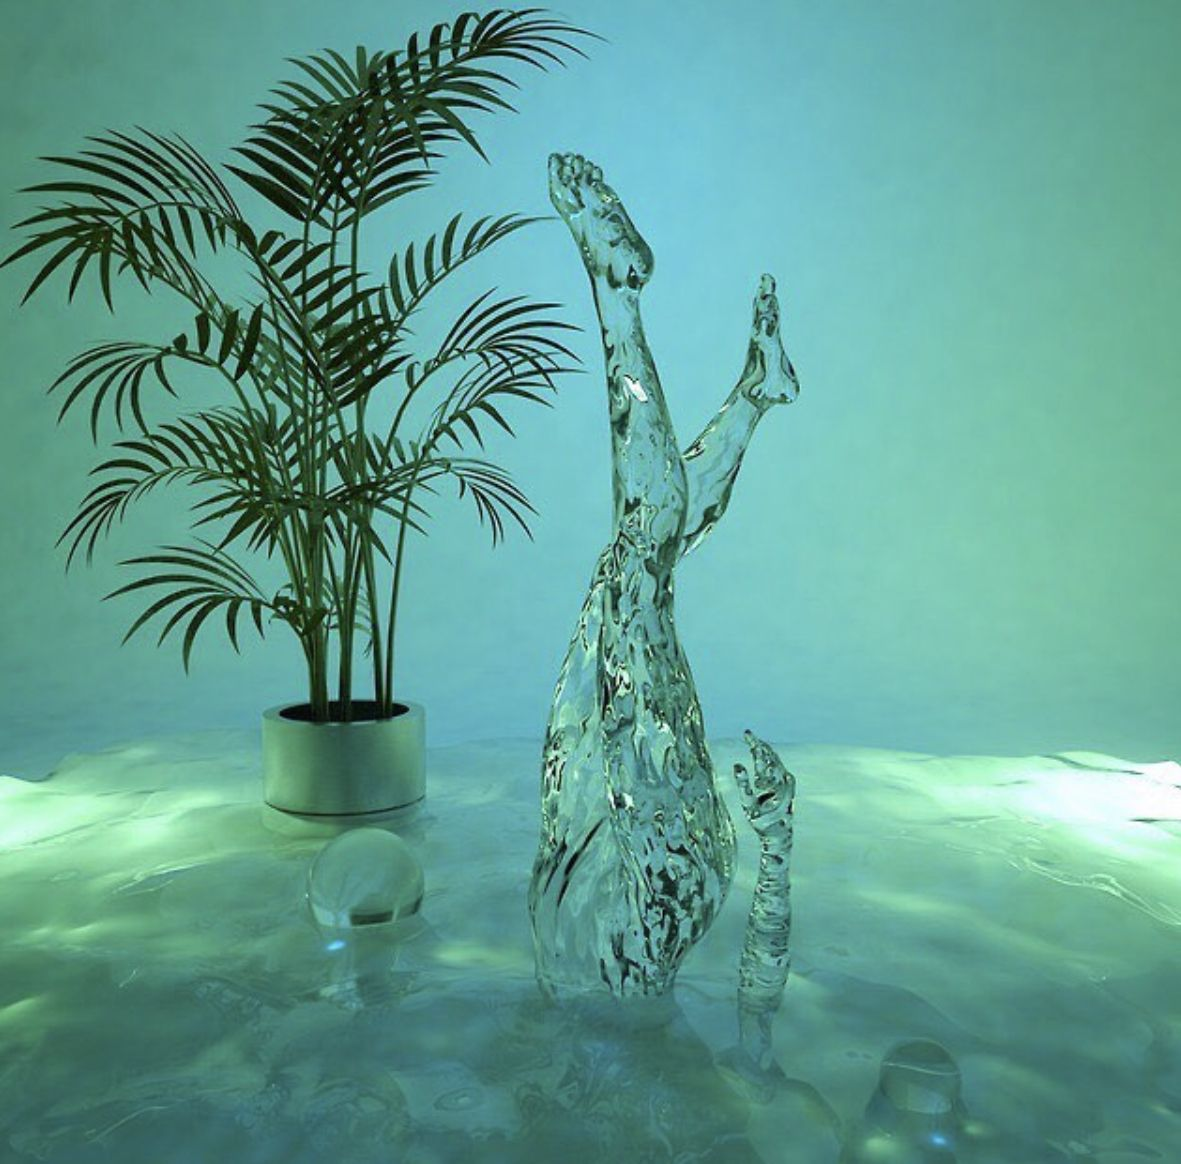 Arty cool pic - ice sculpture #art #arty #lovedesign